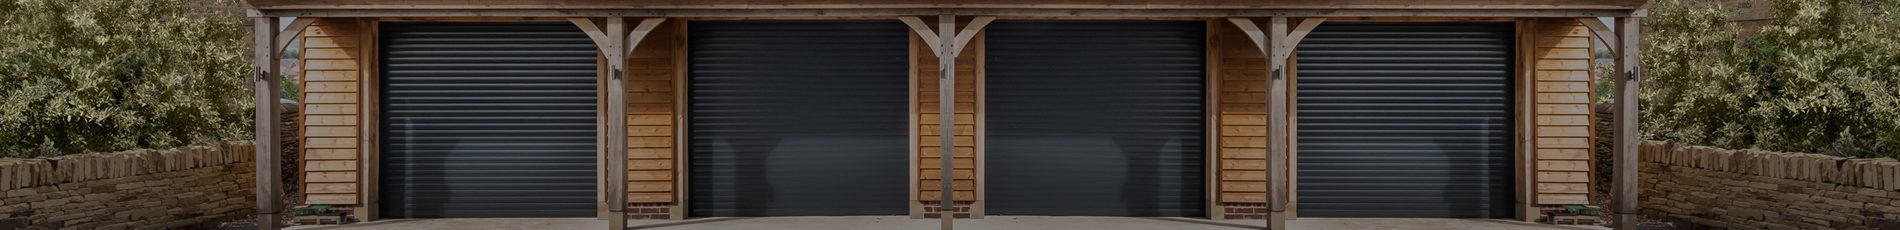 Roller Garage Doors Godalming